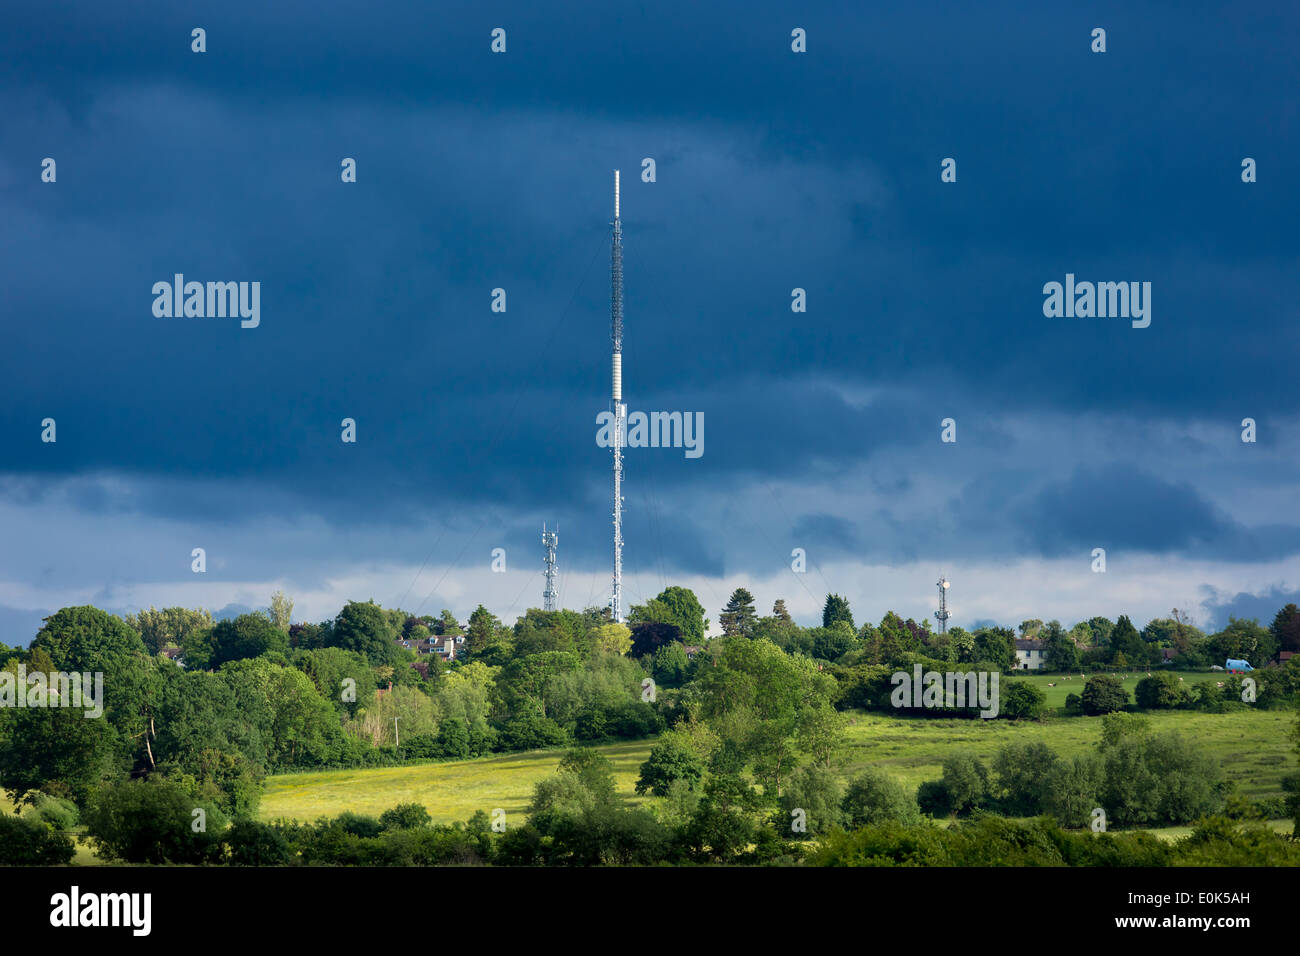 Television and Radio transmitter masts at Beckley in Oxfordshire by Otmoor, England, UK - Stock Image